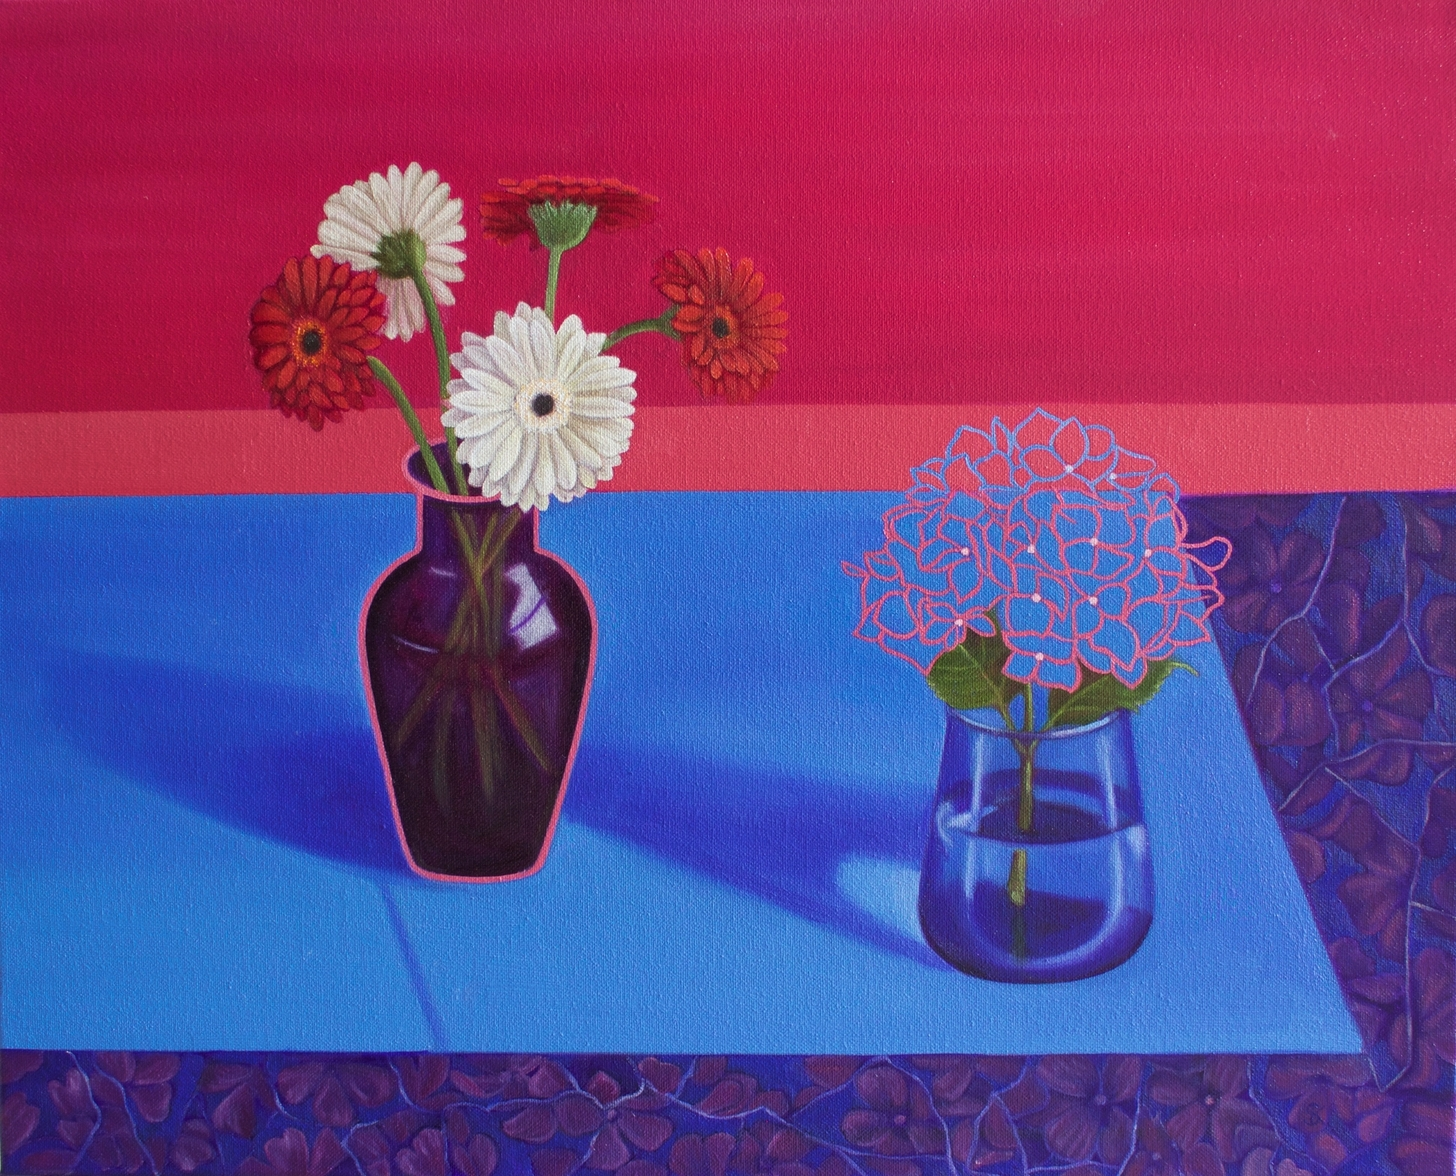 Suzanne Kemplay, Gerberas & Hydranger, Oil on canvas, 40cm x 50cm x 1cm,  http://www.suzannekemplay.co.uk